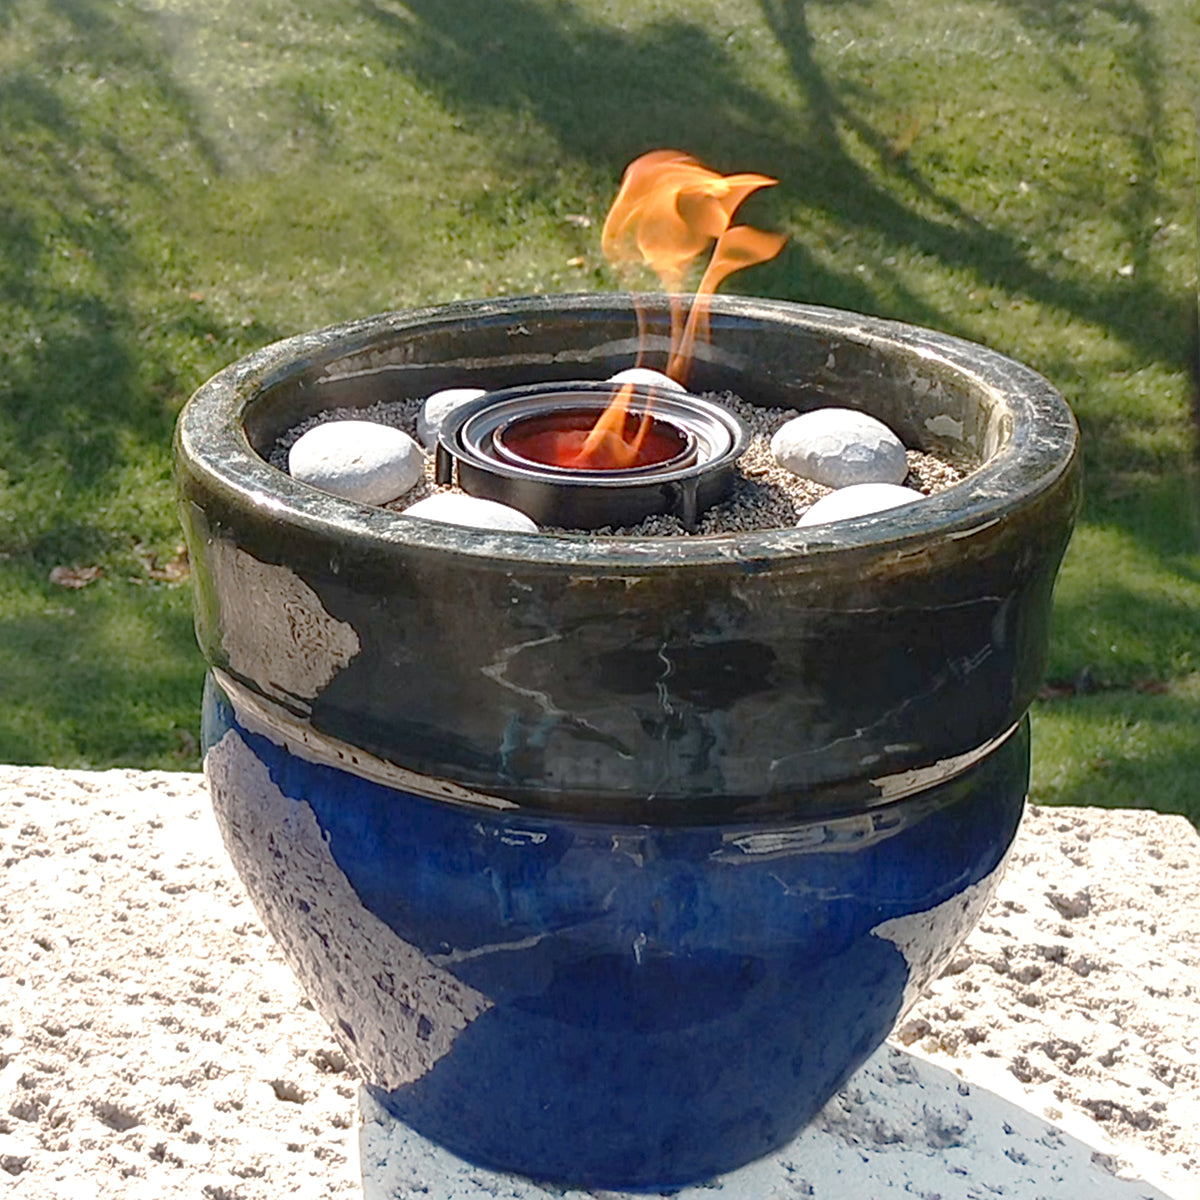 EchoFlame Fire Pot Kit